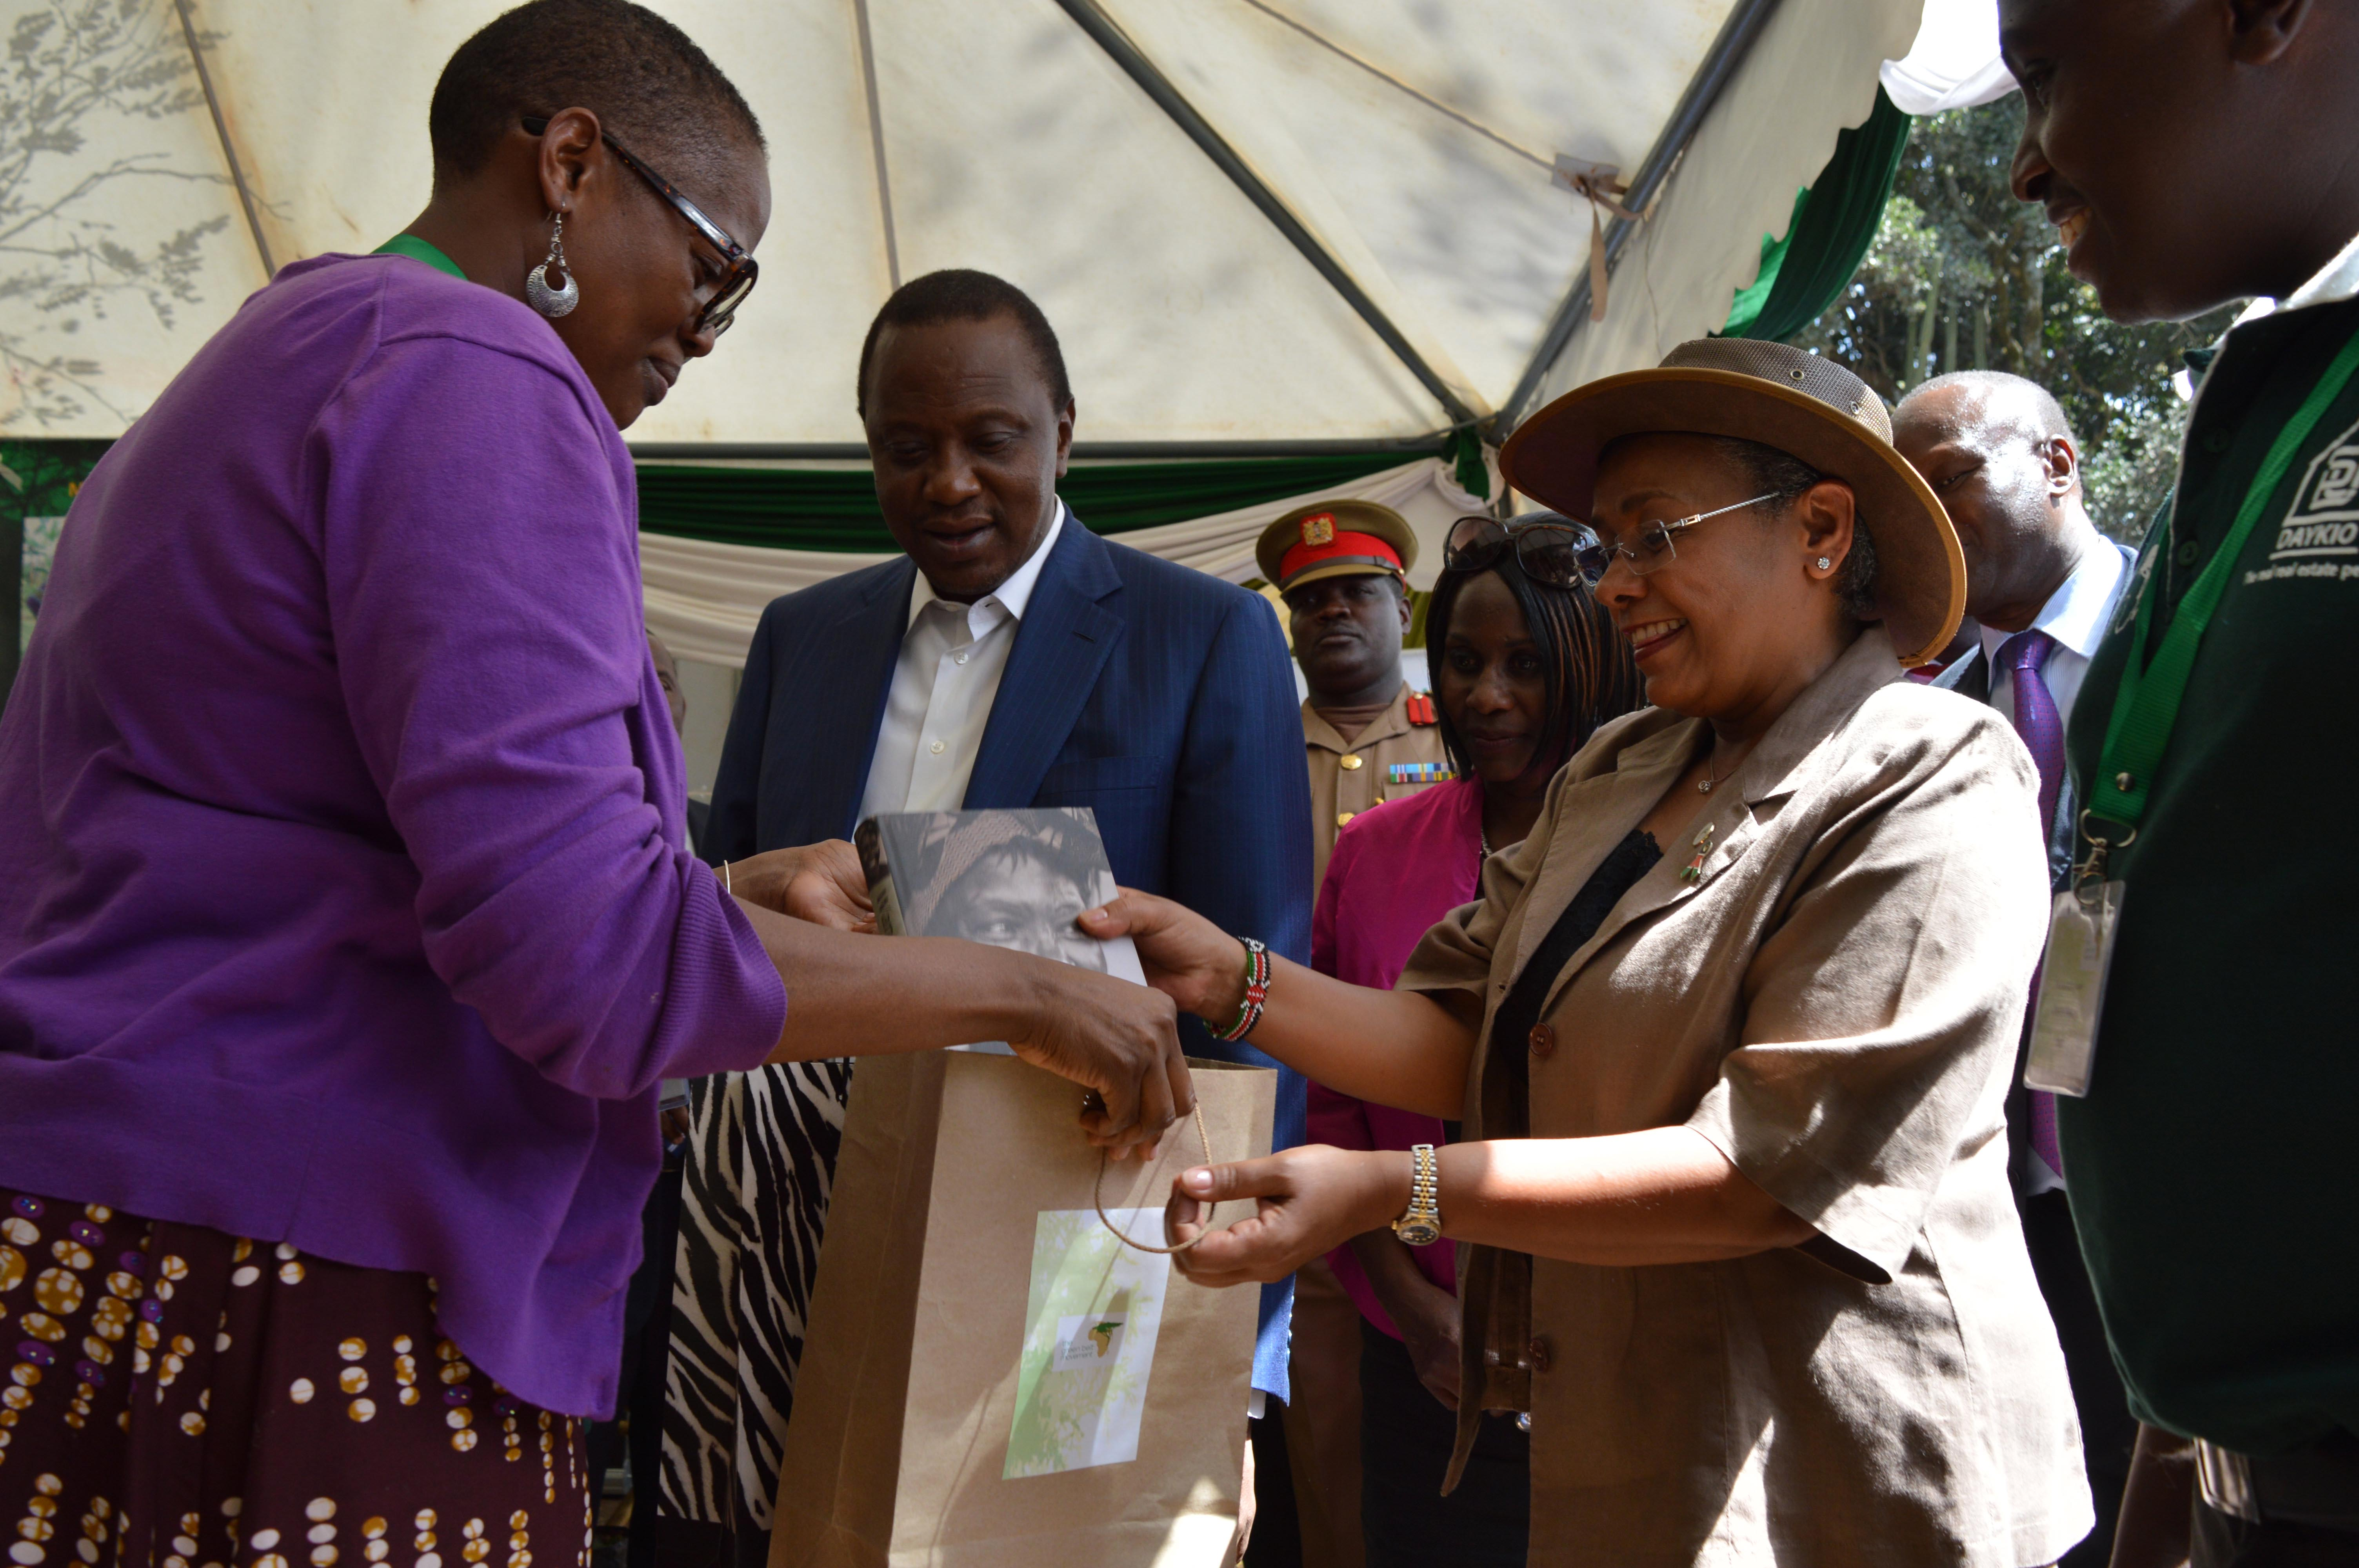 GBM Board Chair, Wanjira Mathai presents a gift to H.E President Uhuru Kenyatta and First Lady Margaret Kenyatta